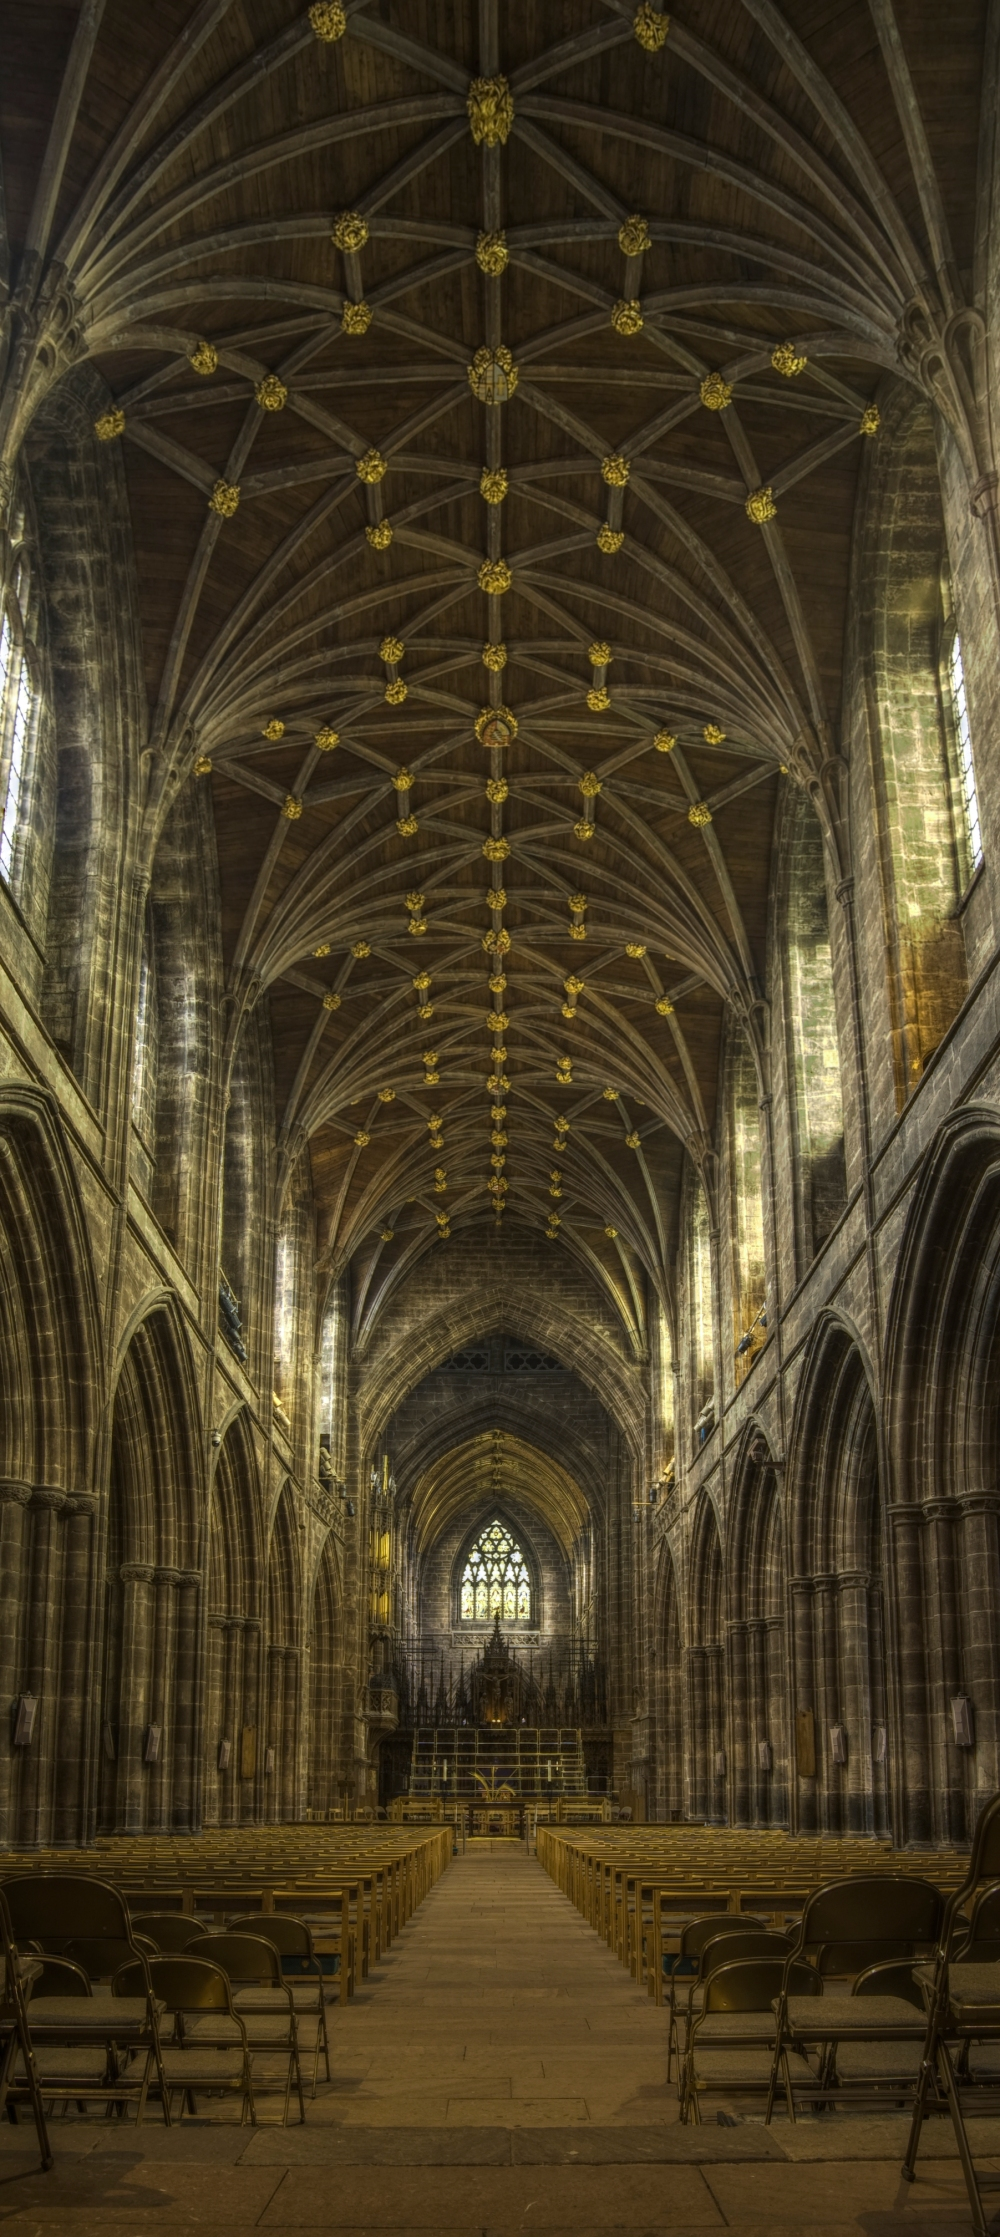 Chester_cathedral_nave.jpg